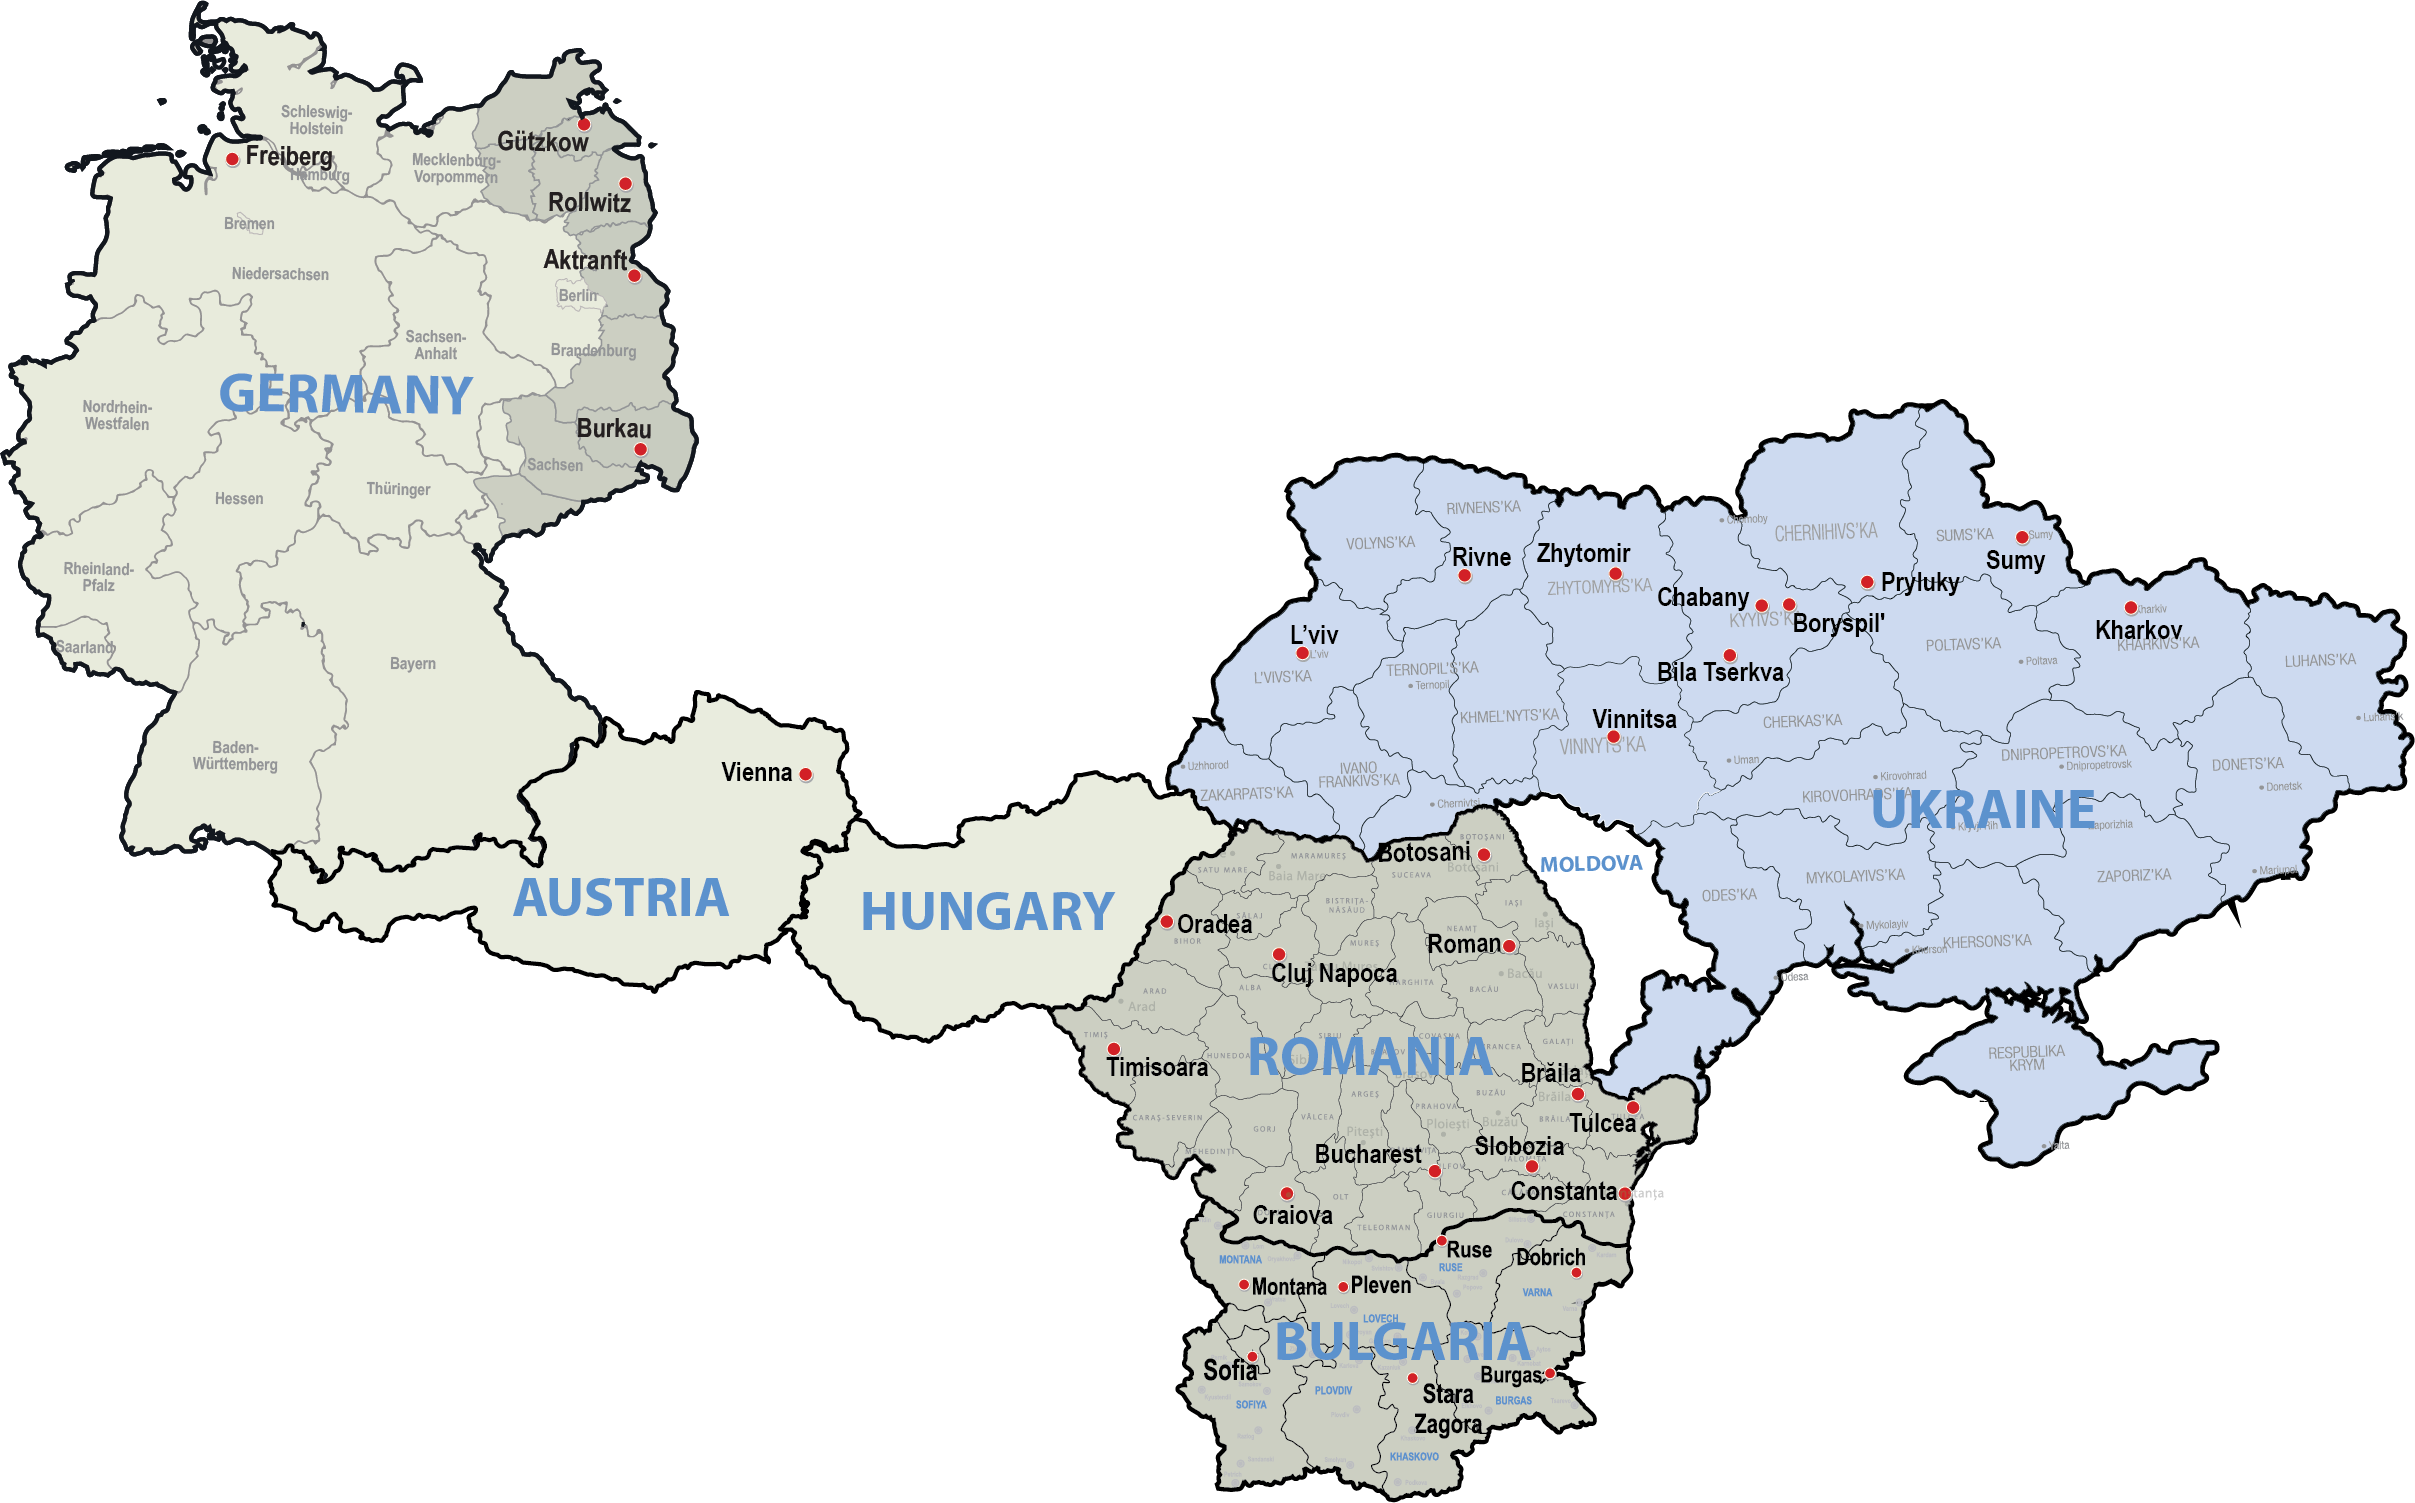 Map of Titan Machinery International Dealerships in Europe